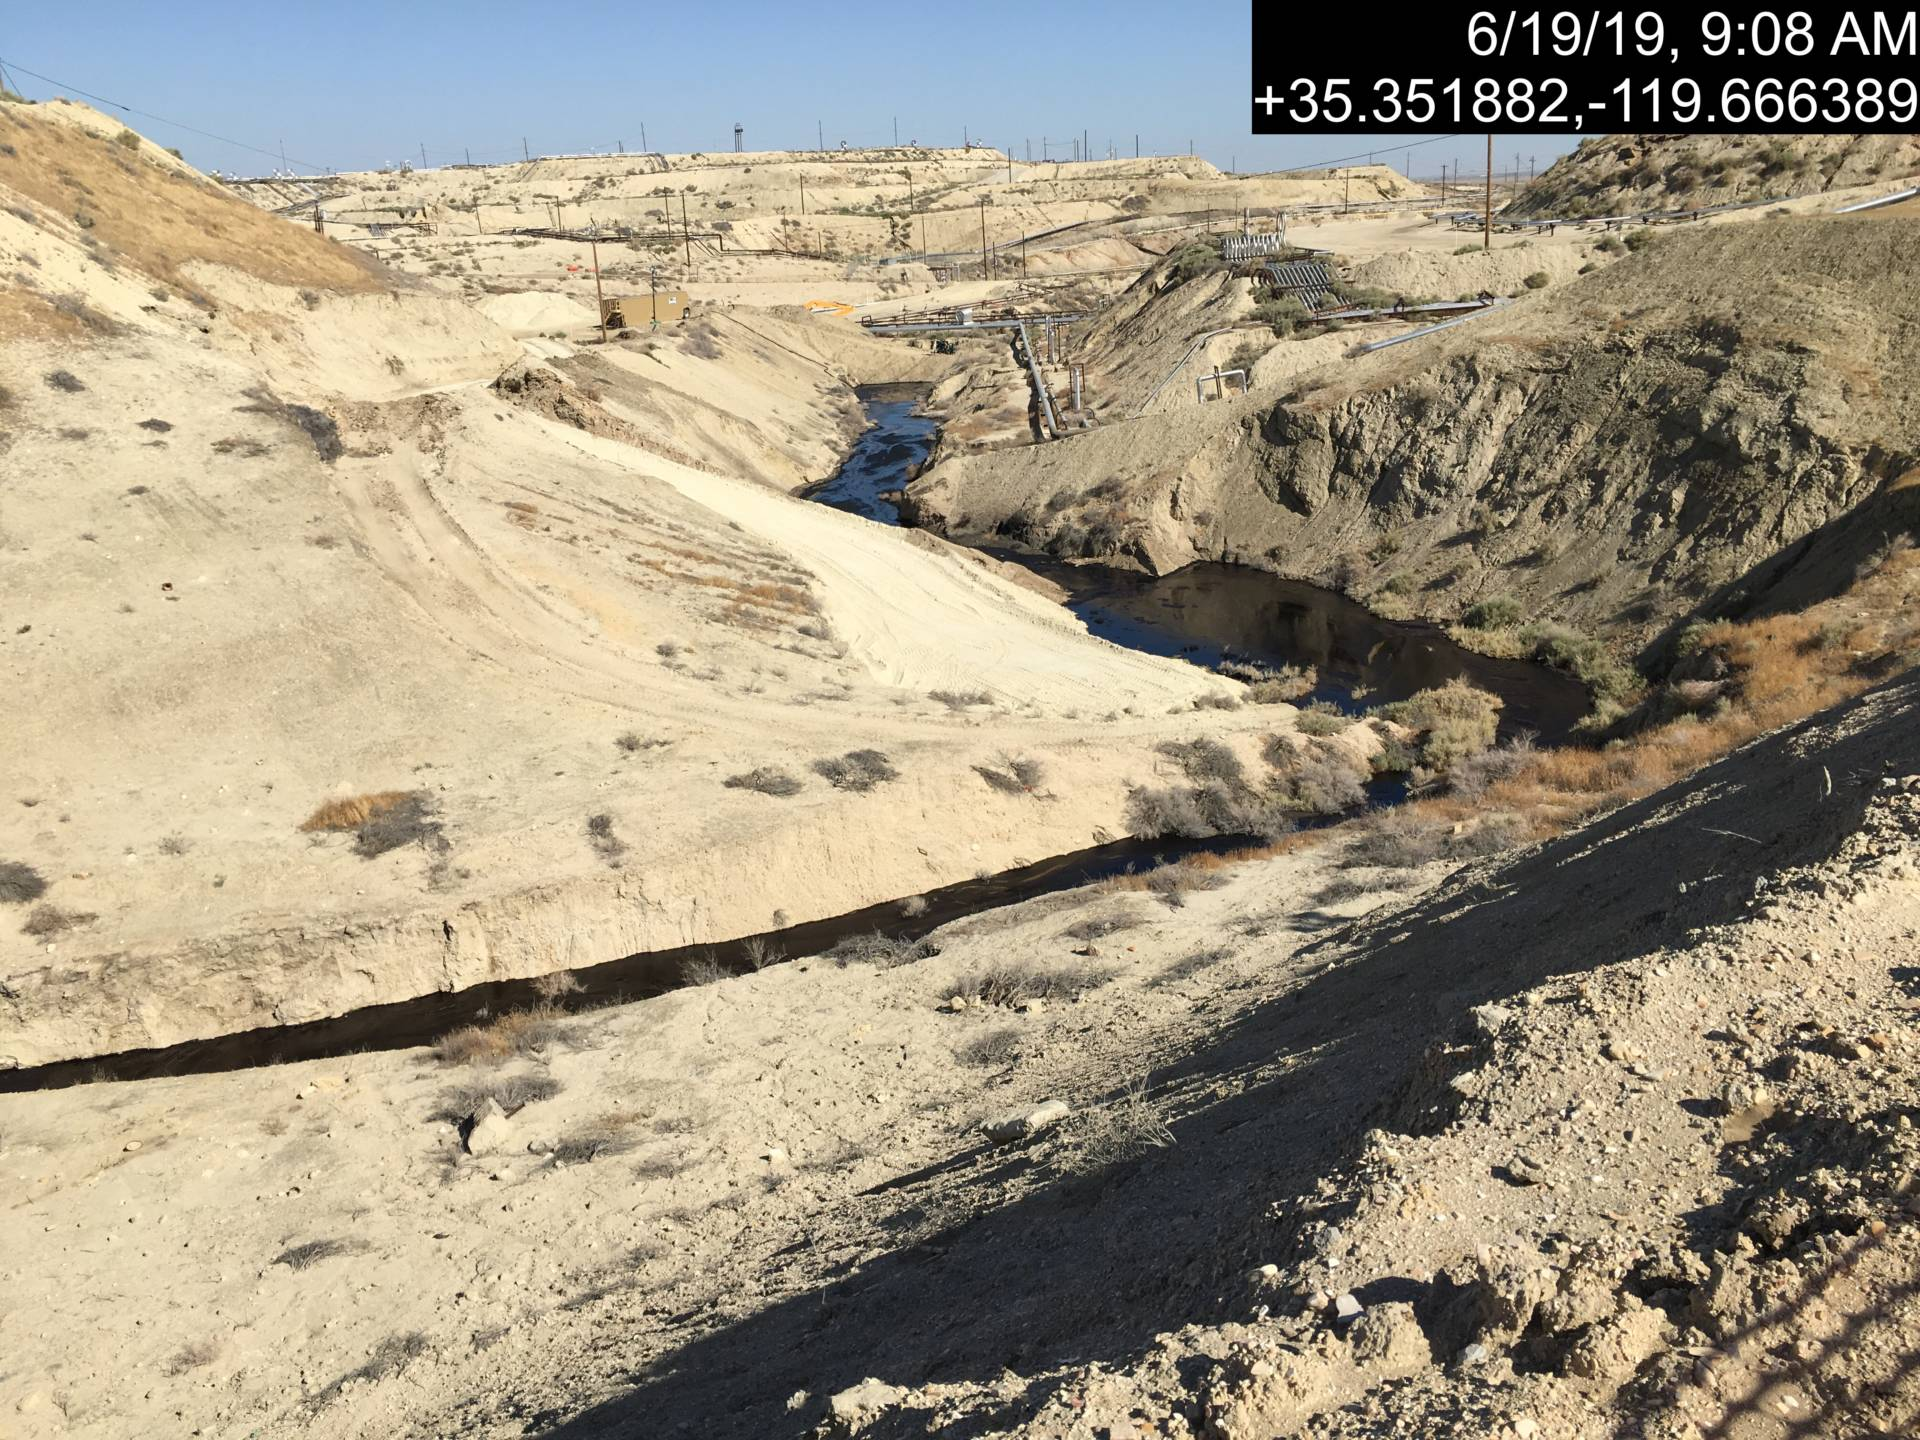 Image showing portion of dry creekbed fouled by oil spill at a Chevron well site in Kern County.  California Department of Conservation